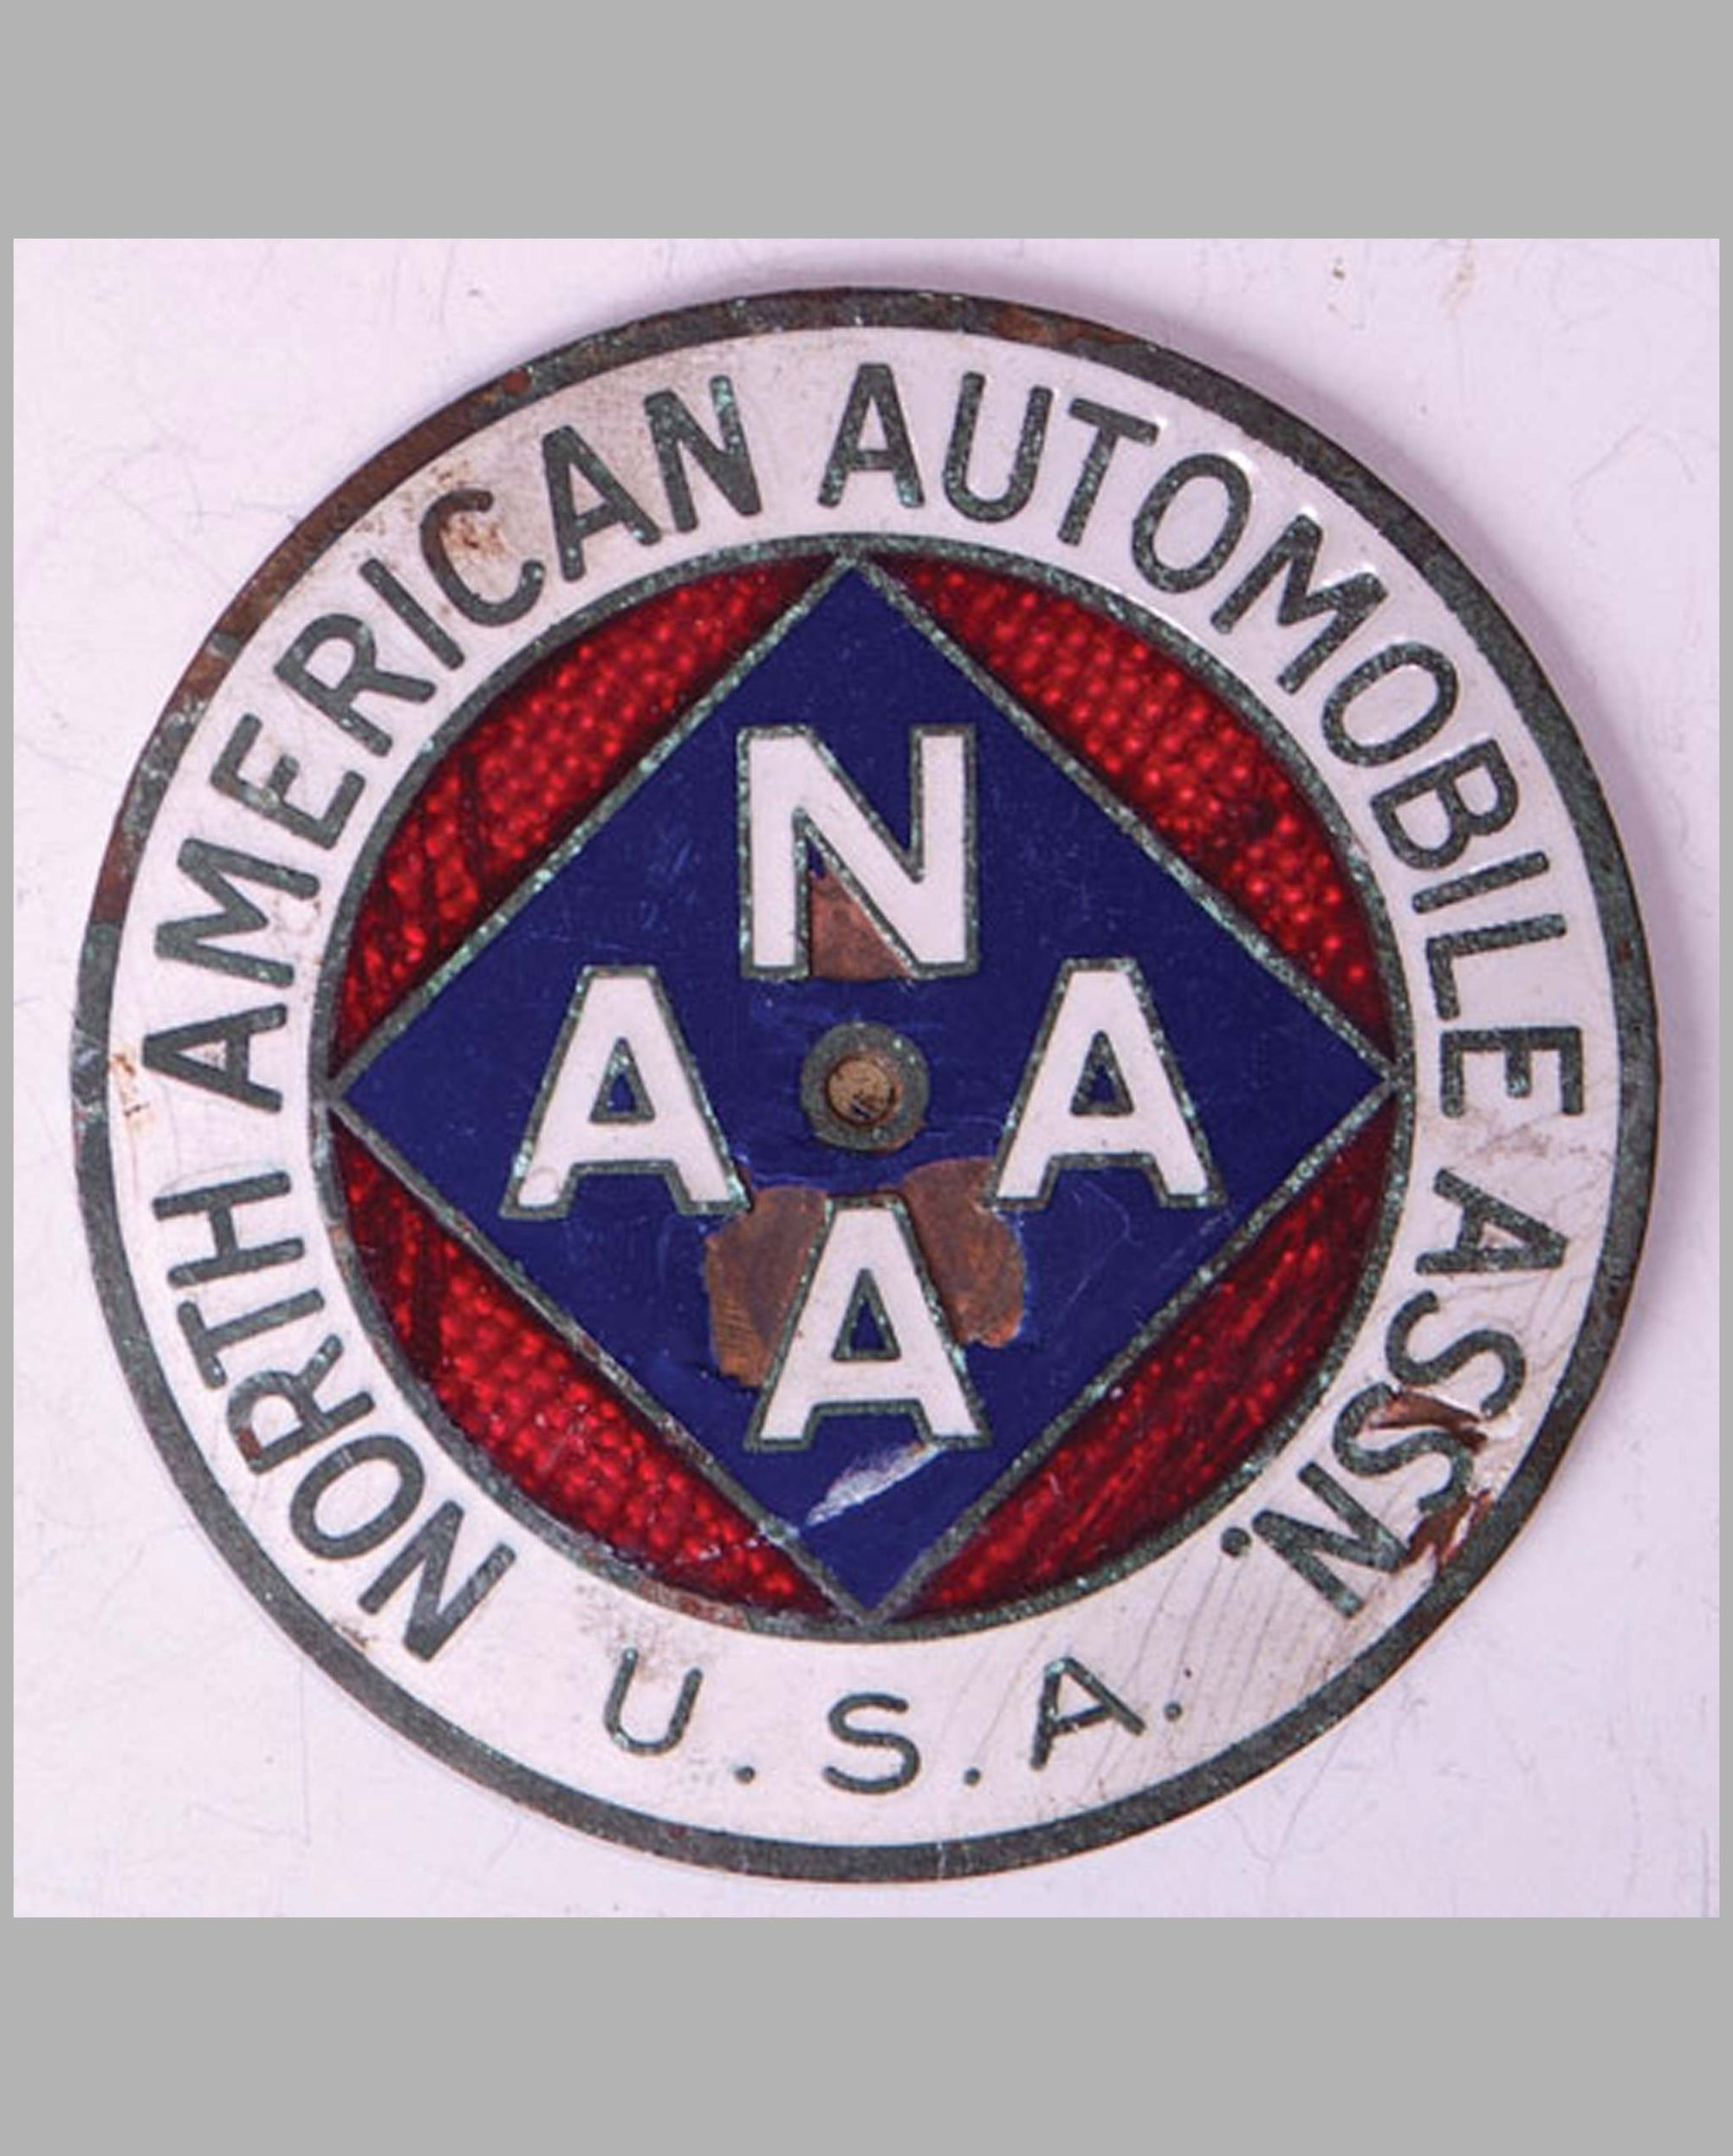 North American Automobile Assn member's badge